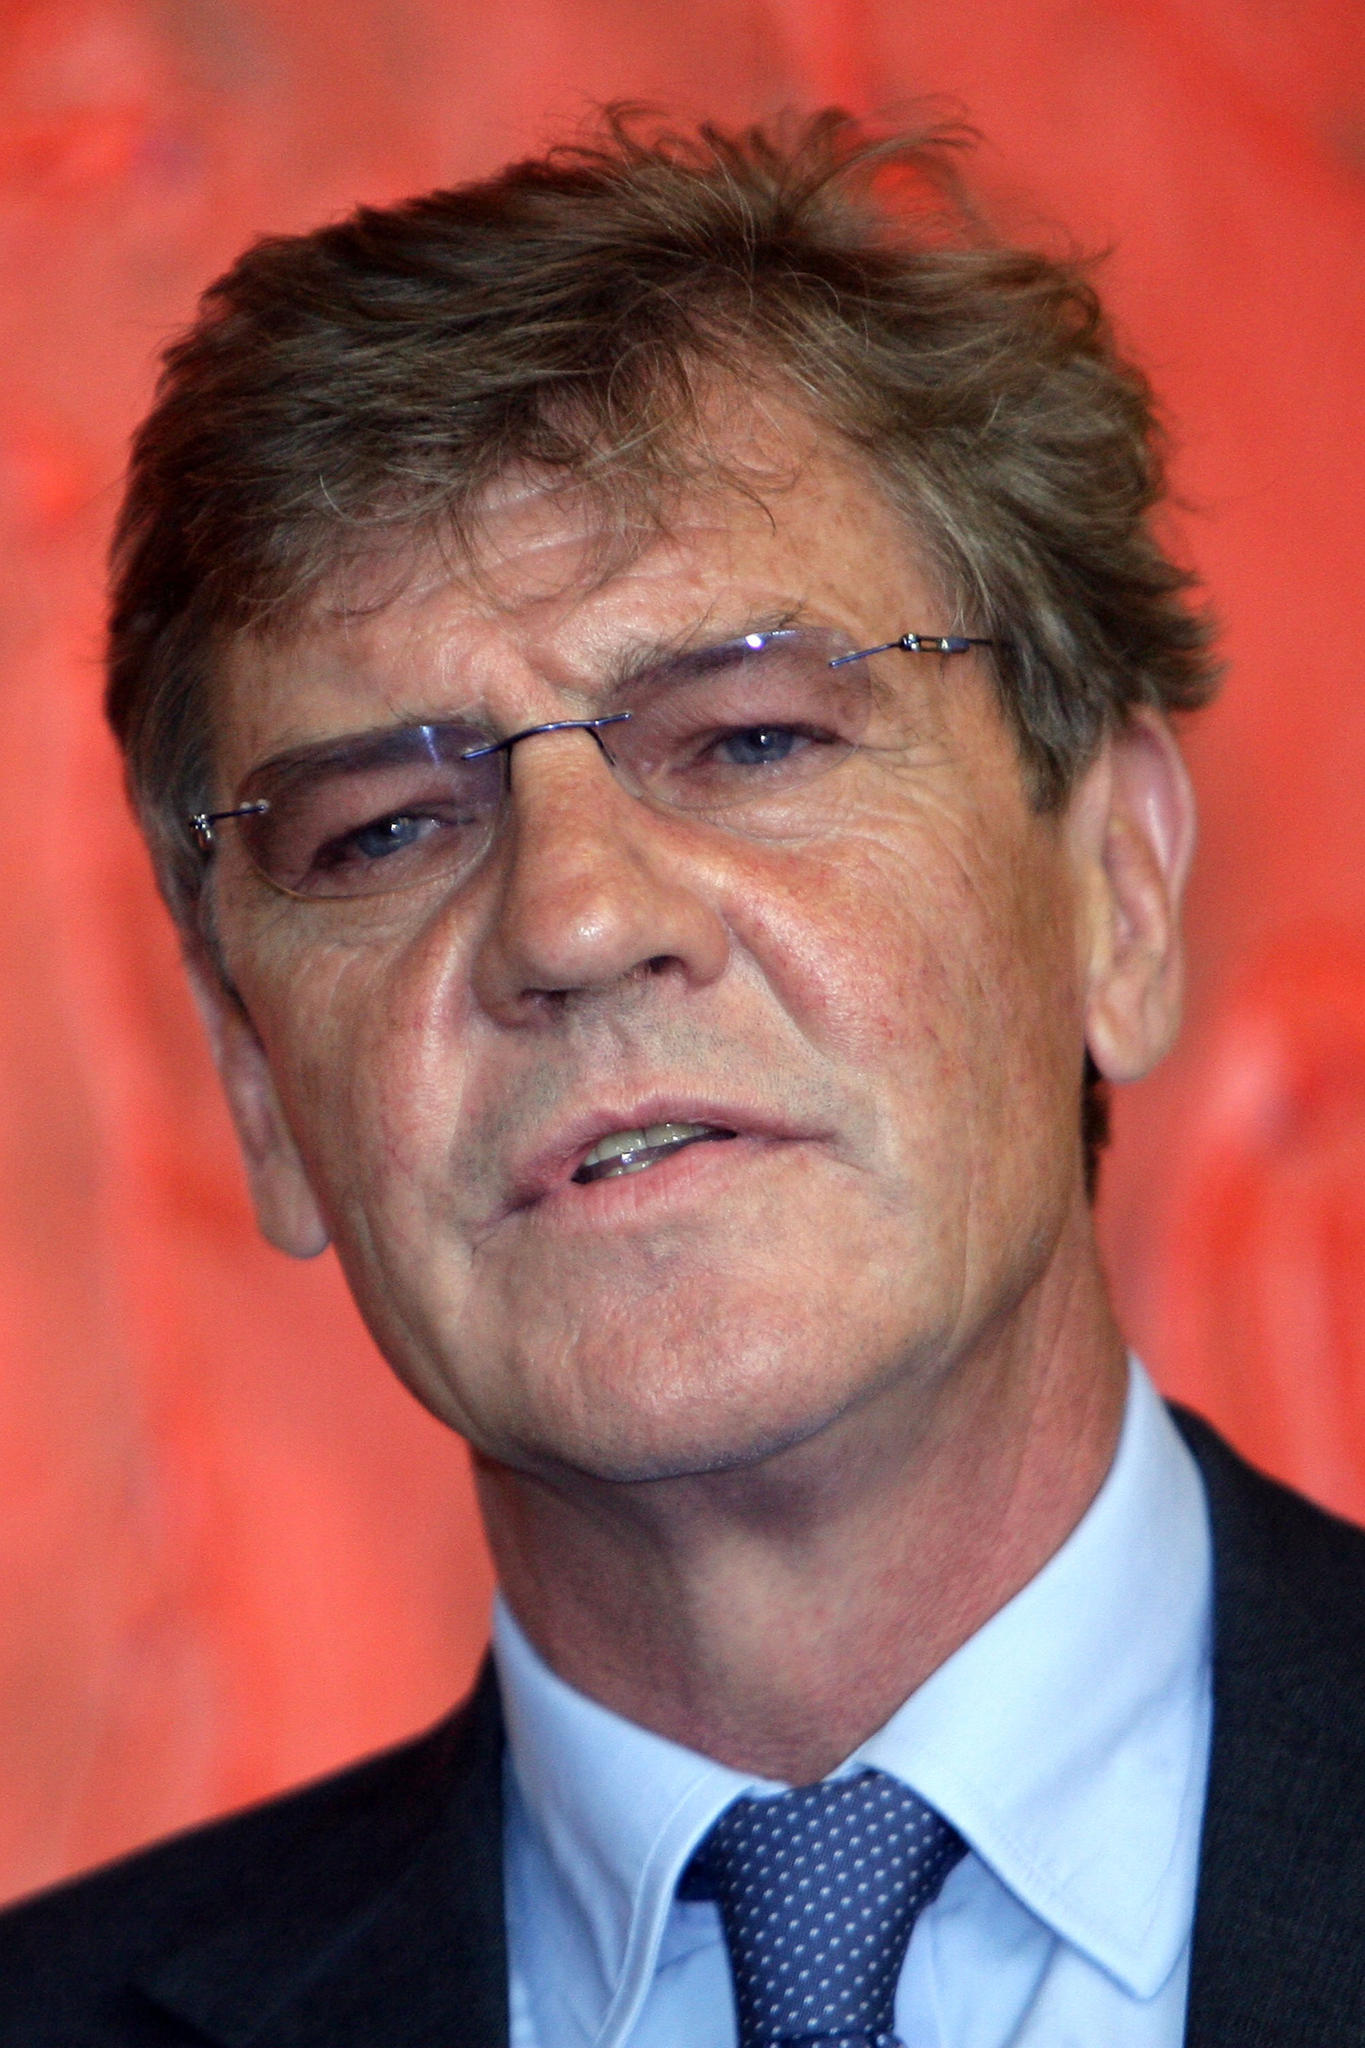 German Prince Ernst August Of Hannover Faces Trial Again